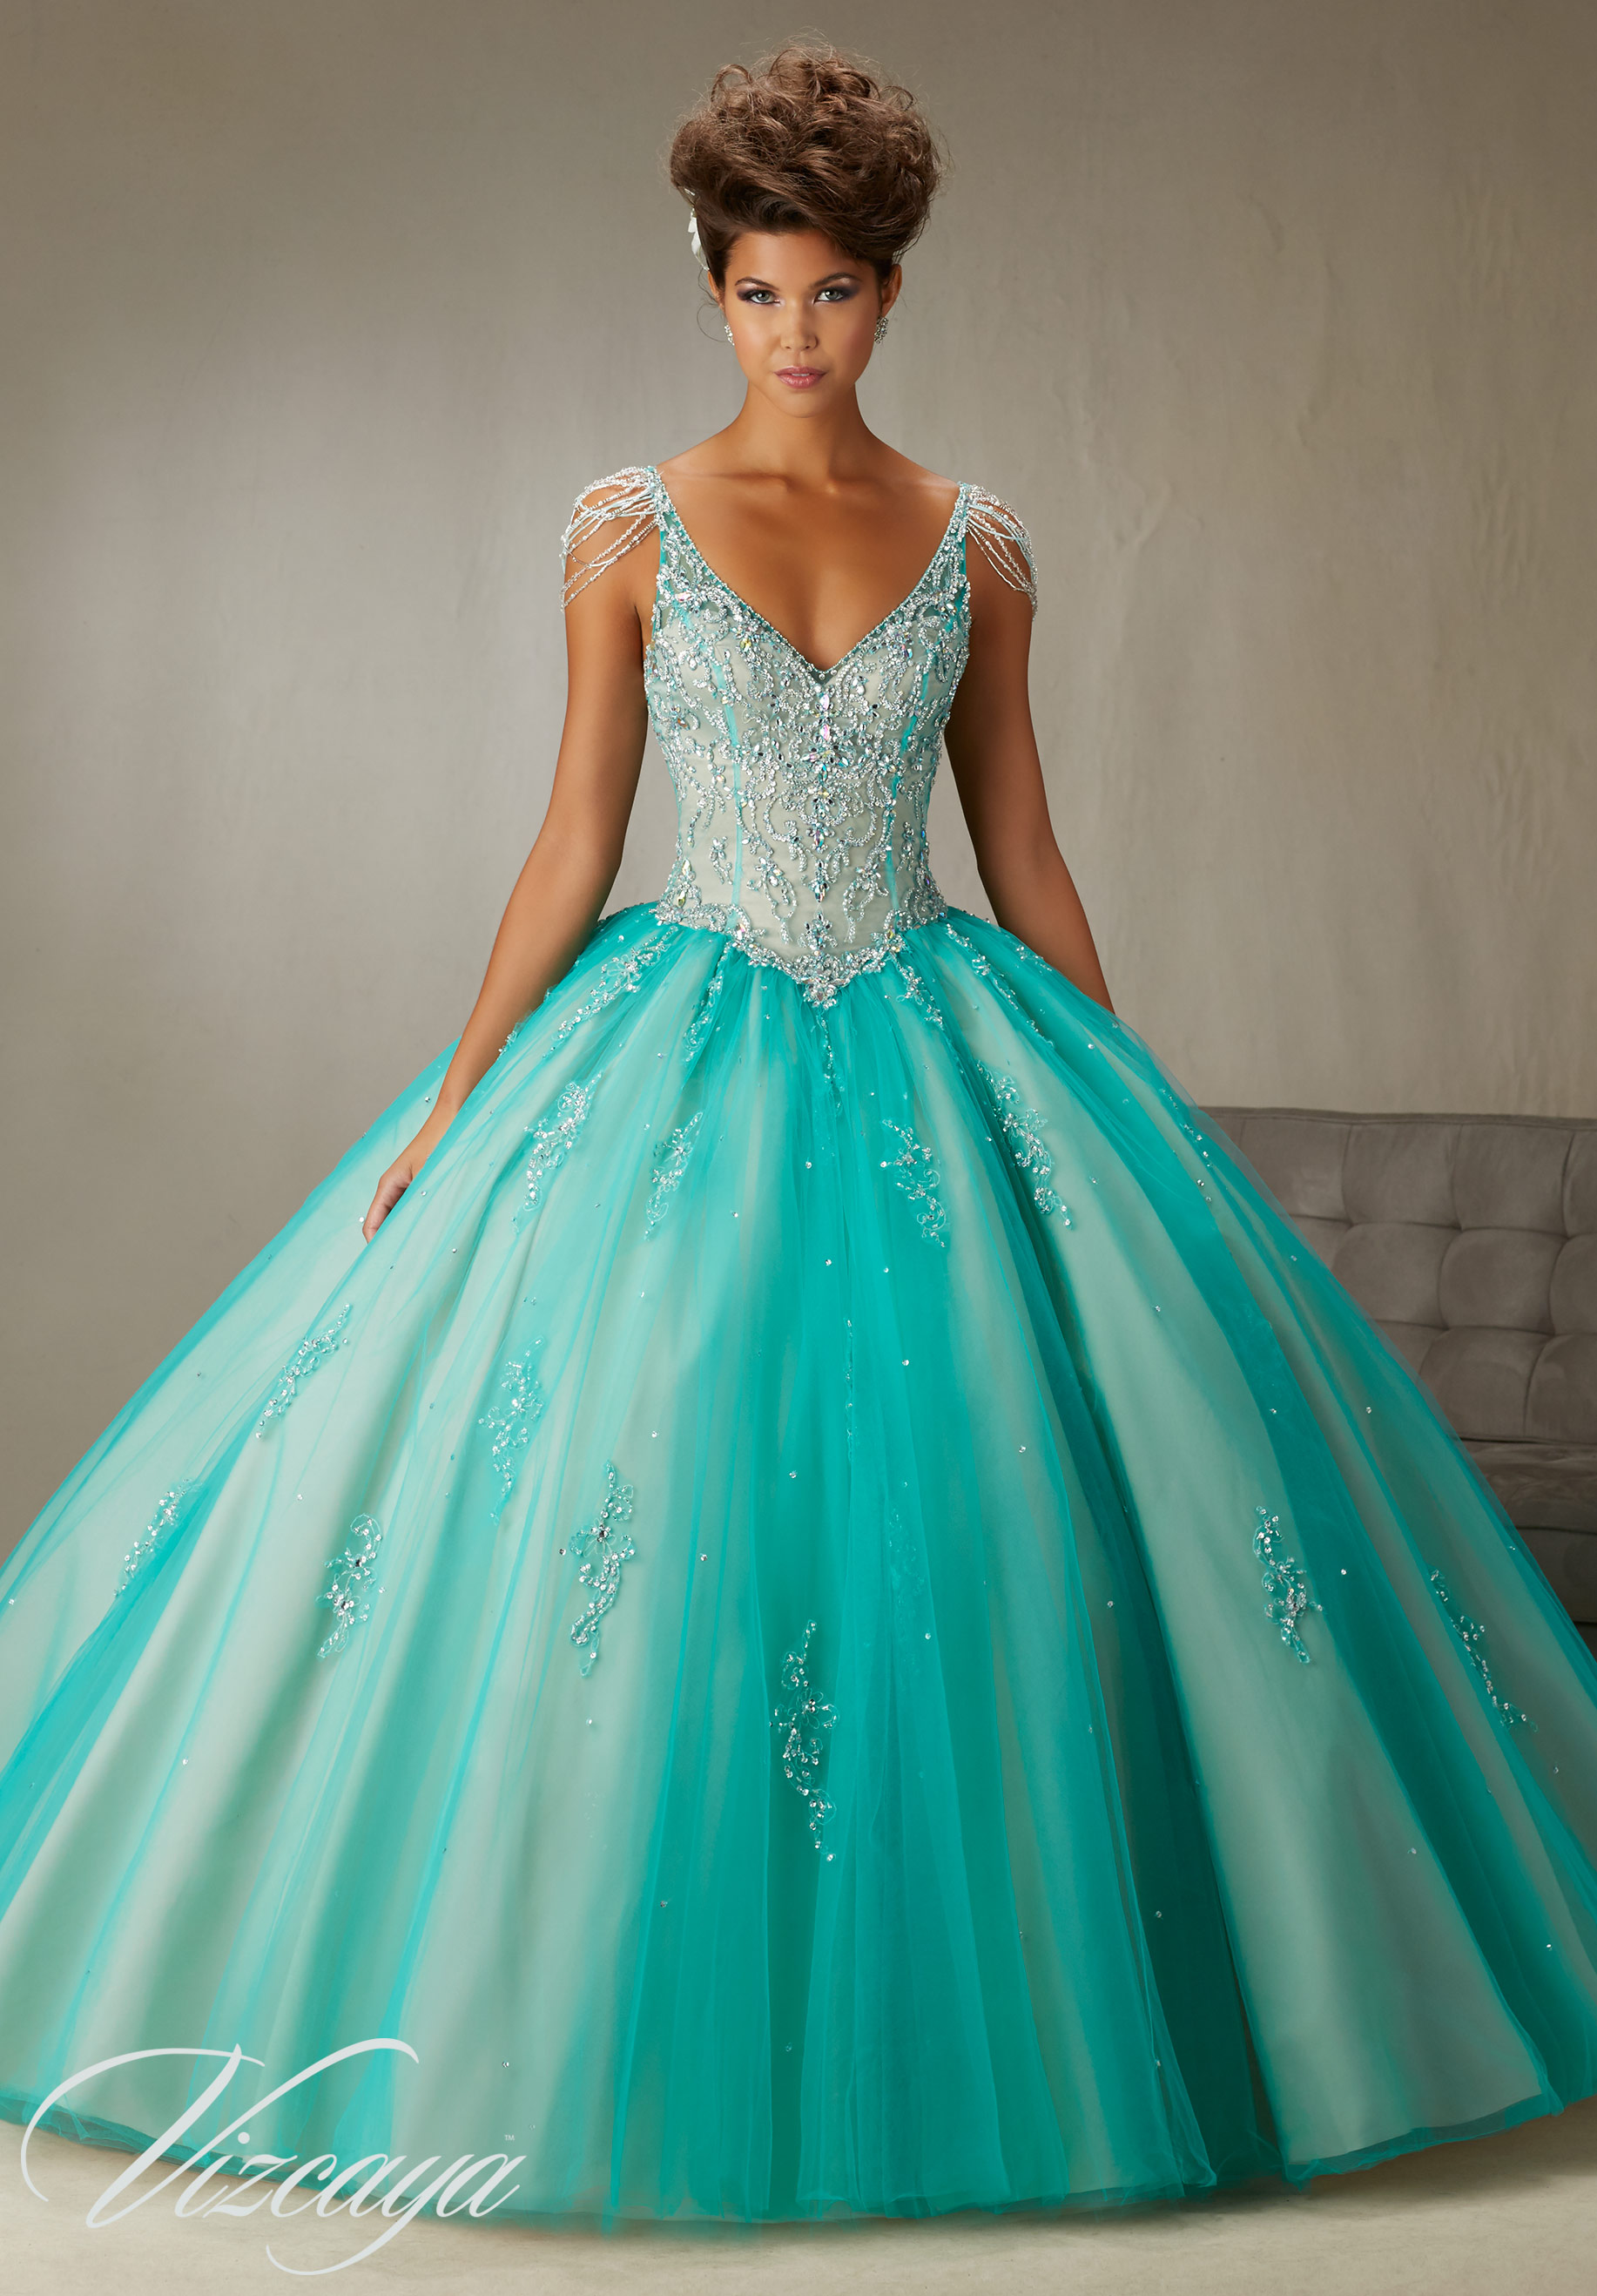 89065 Quinceanera Dresses, Vizcaya Collection - Dresses by Russo Boston